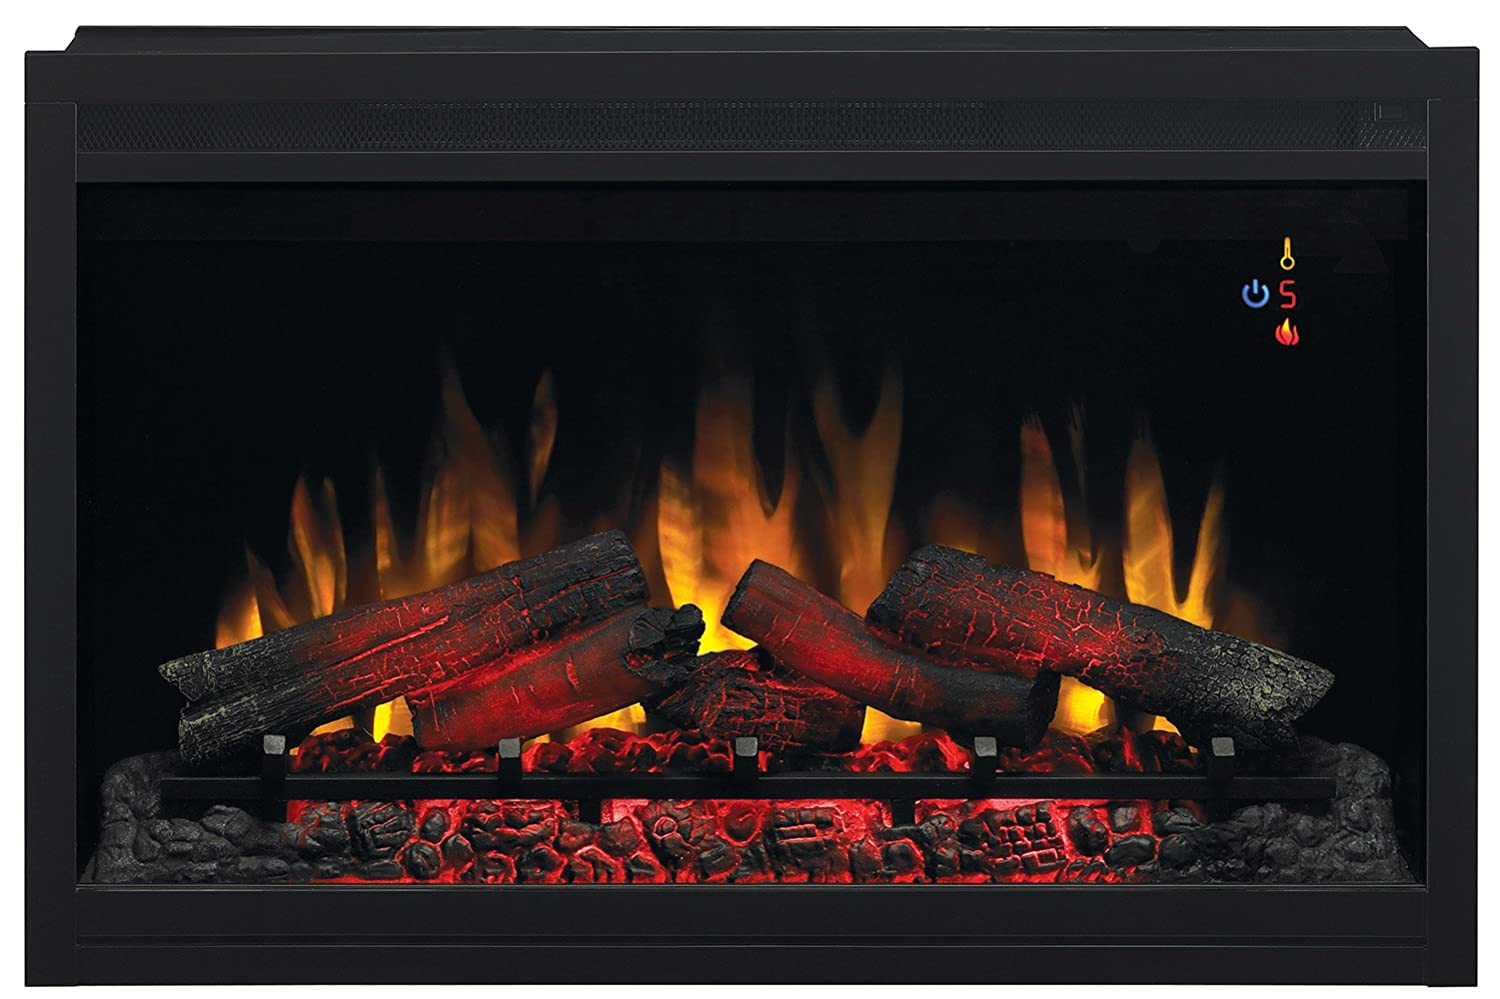 120 volt - Gel Fuel Fireplaces